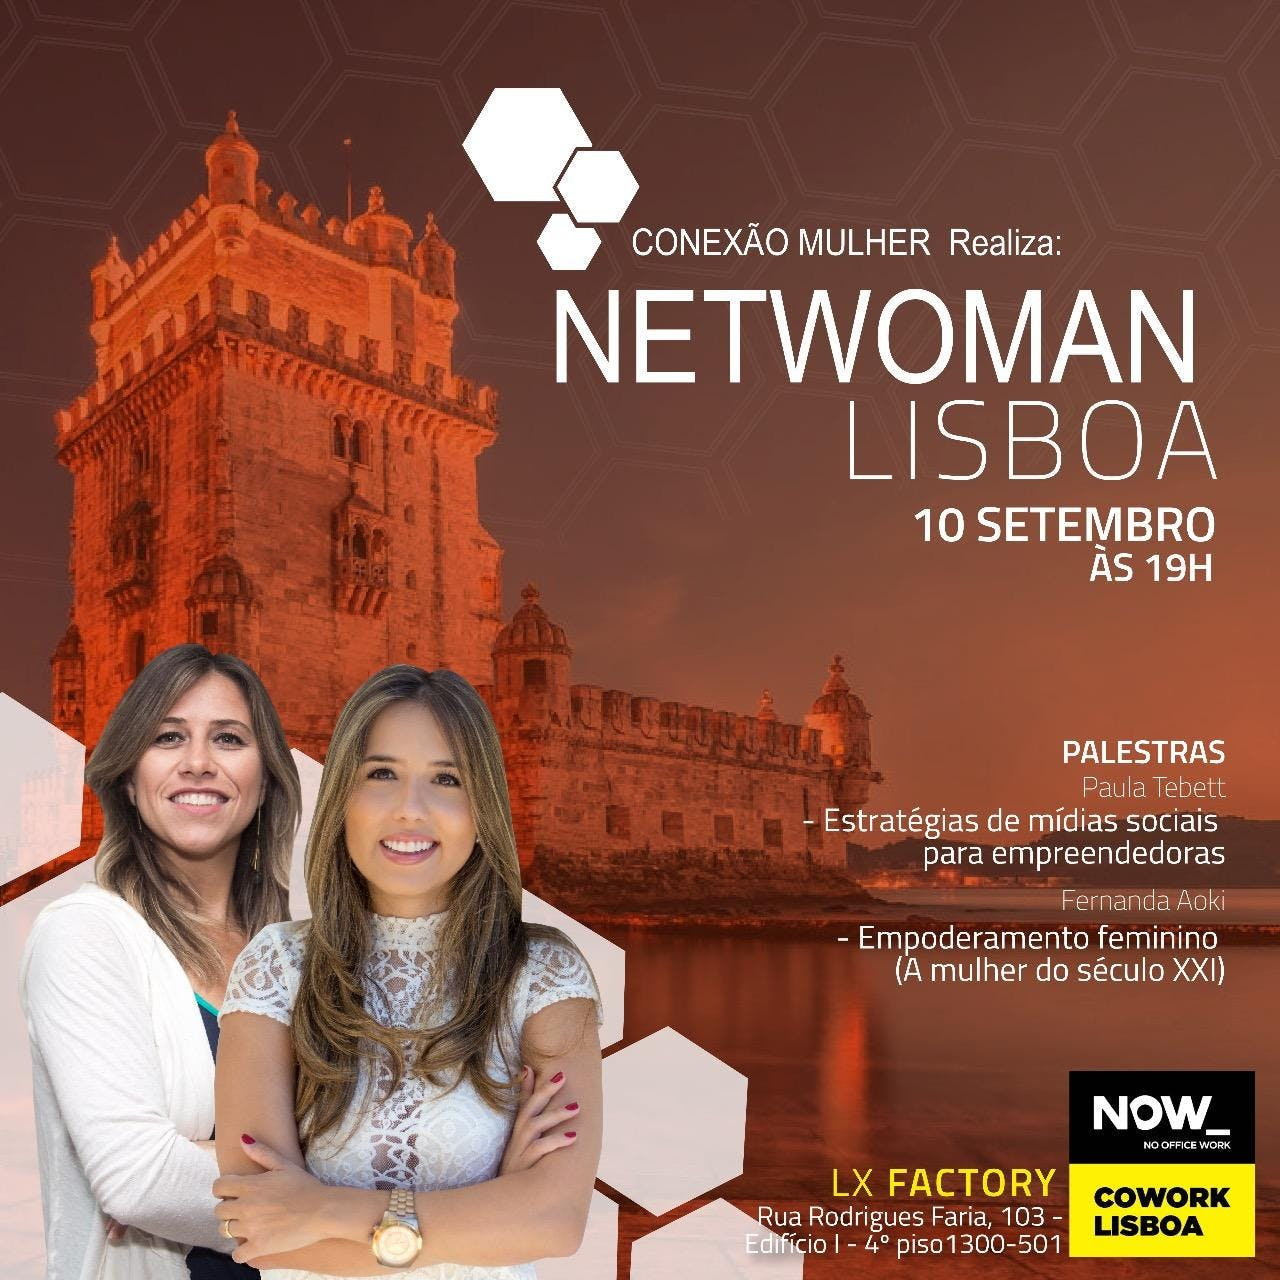 NetWoman - International Network for Business